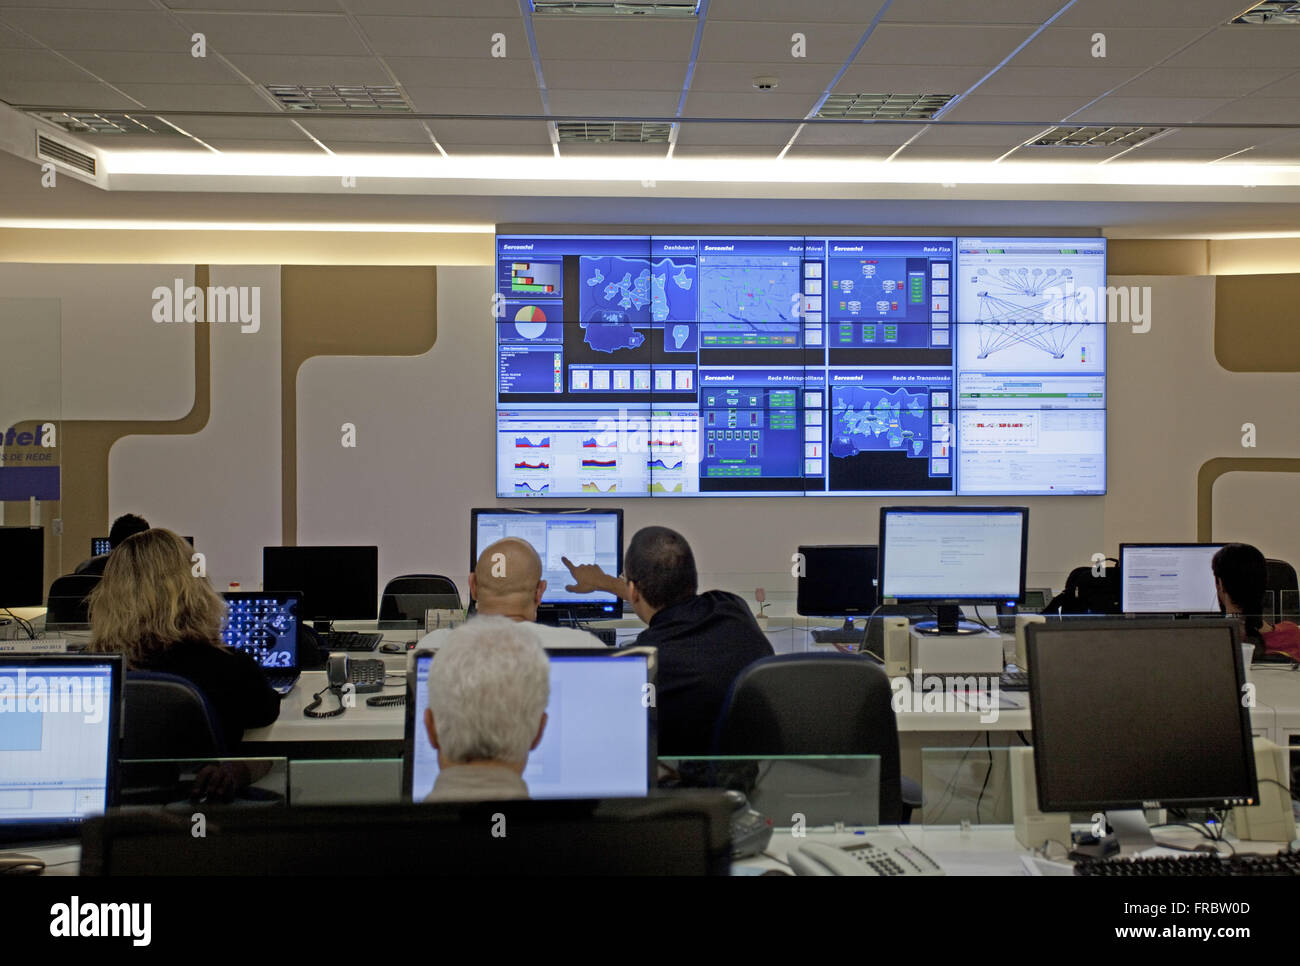 Center operations in telecommunications network operator - Stock Image